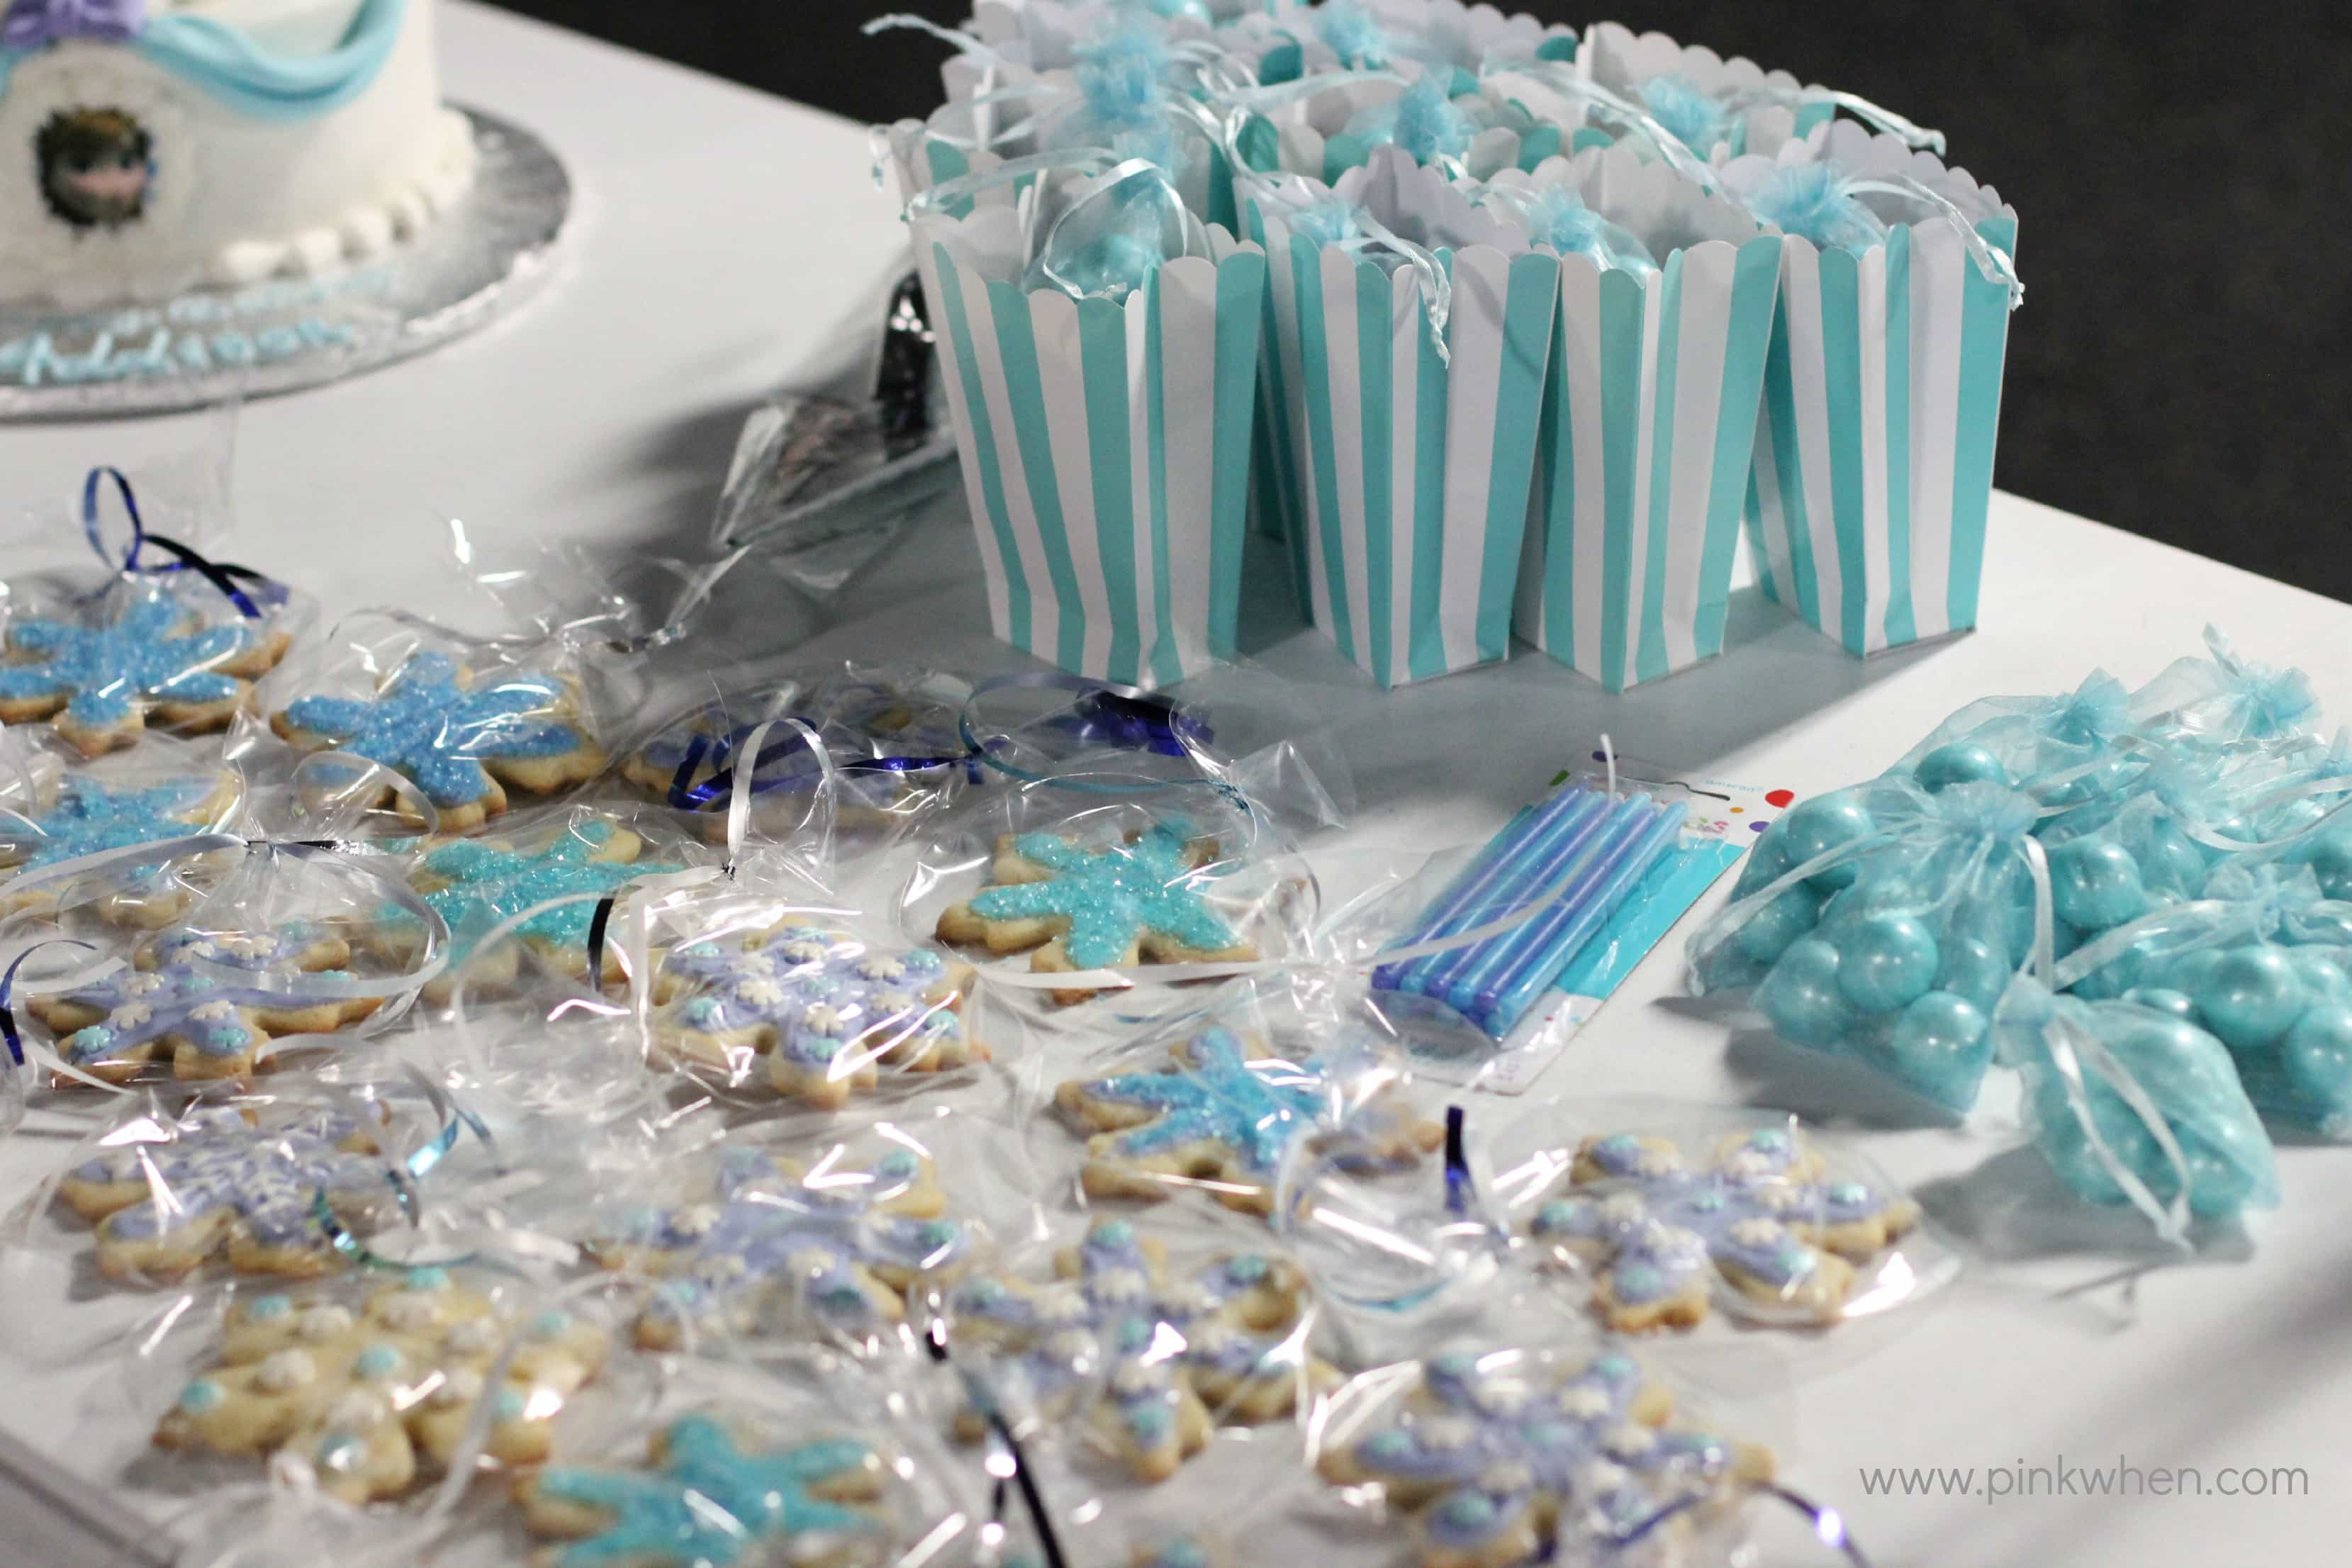 FROZEN Inspired Party Ideas - PinkWhen